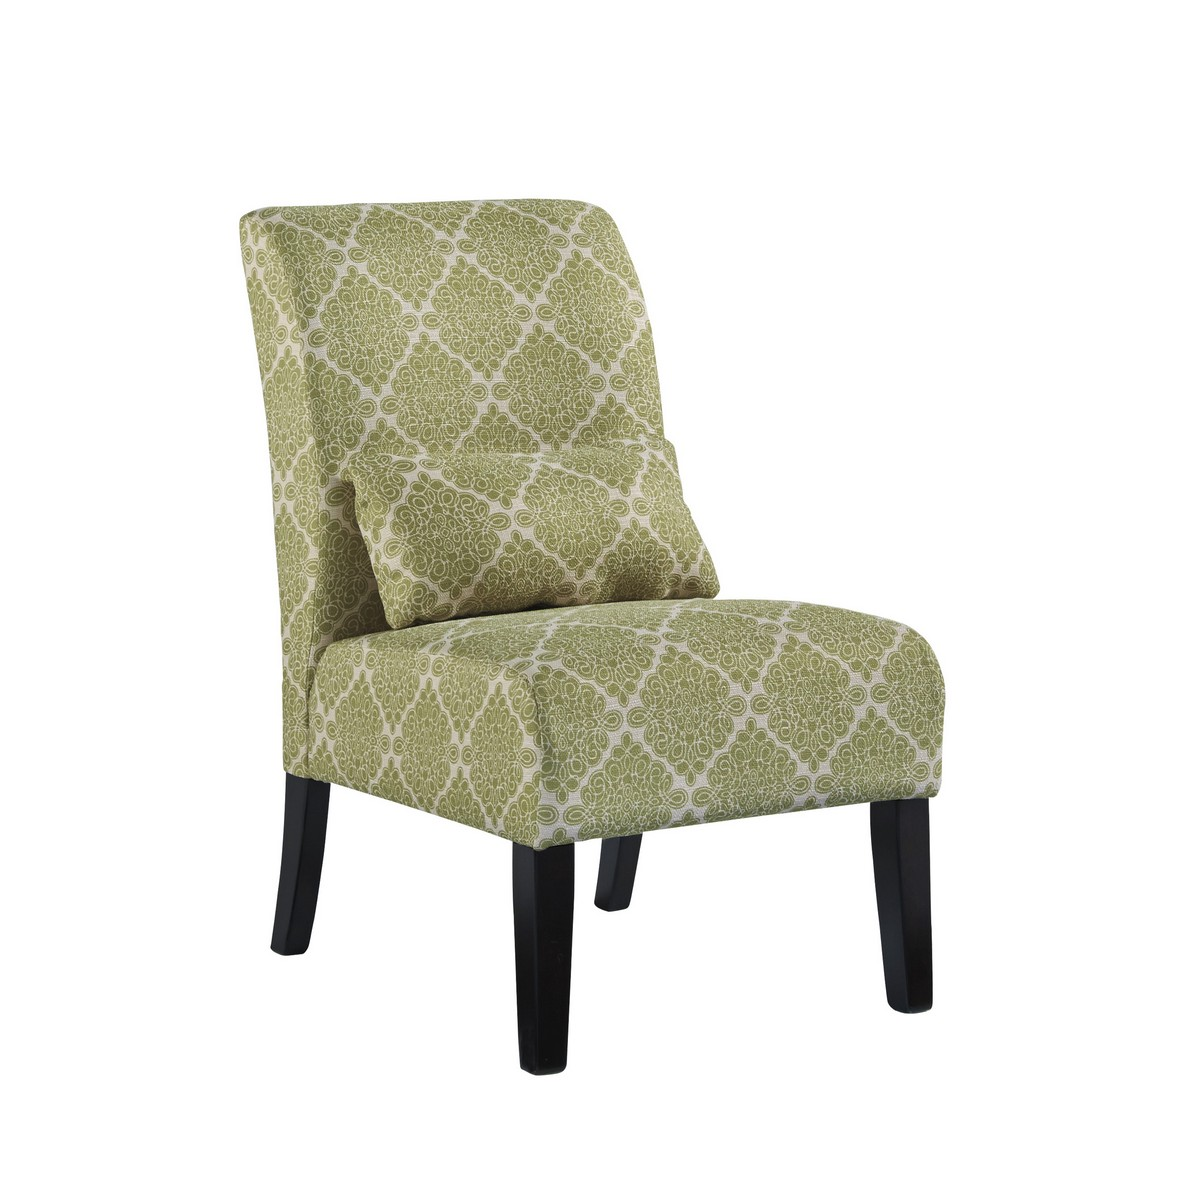 Ashley Annora Accent Chair - Green